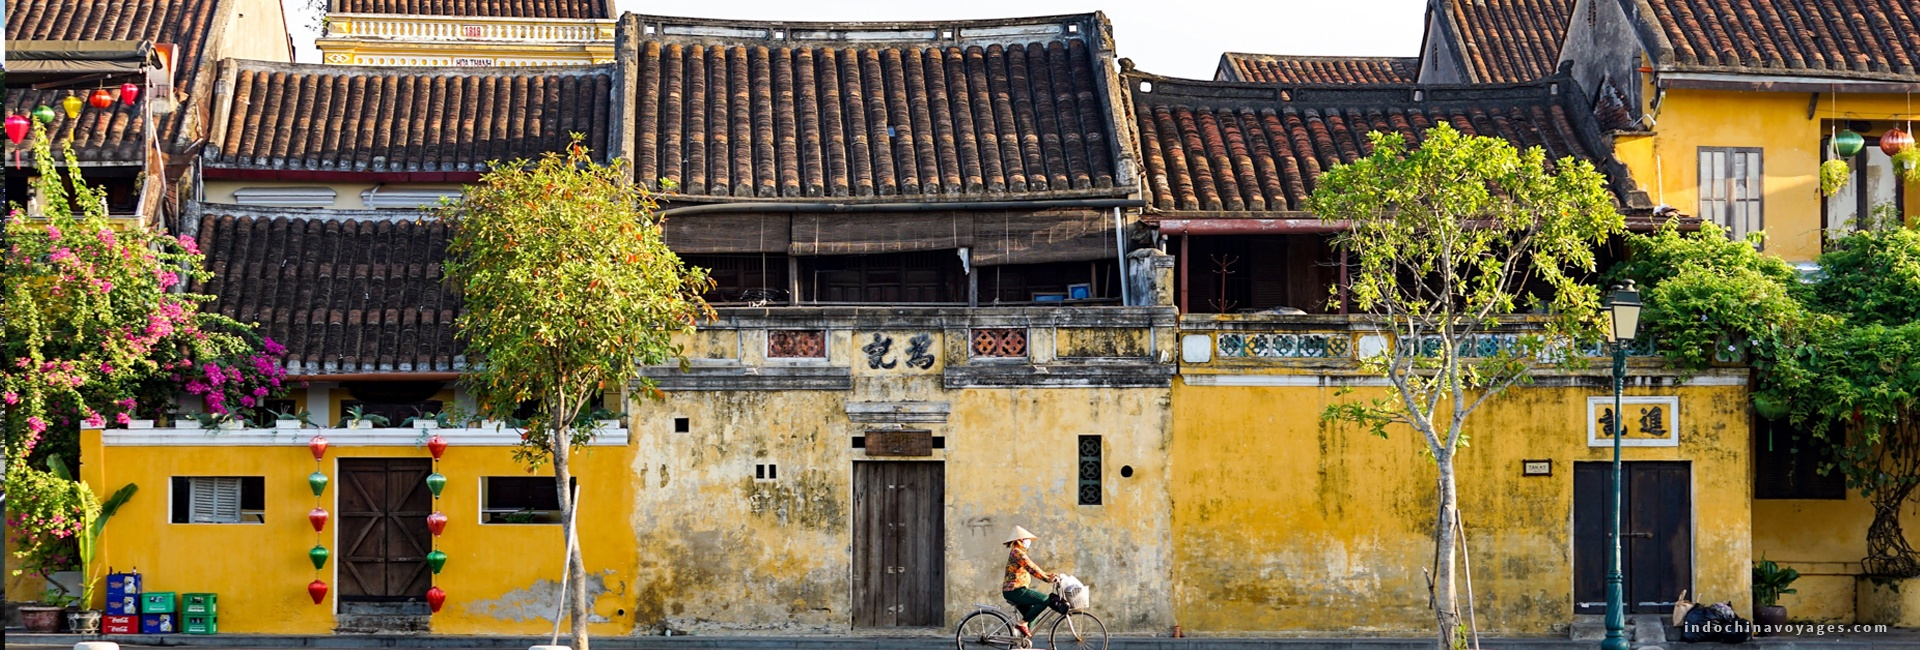 Hoi An ancient town –A sweet blend of art, history, and culture